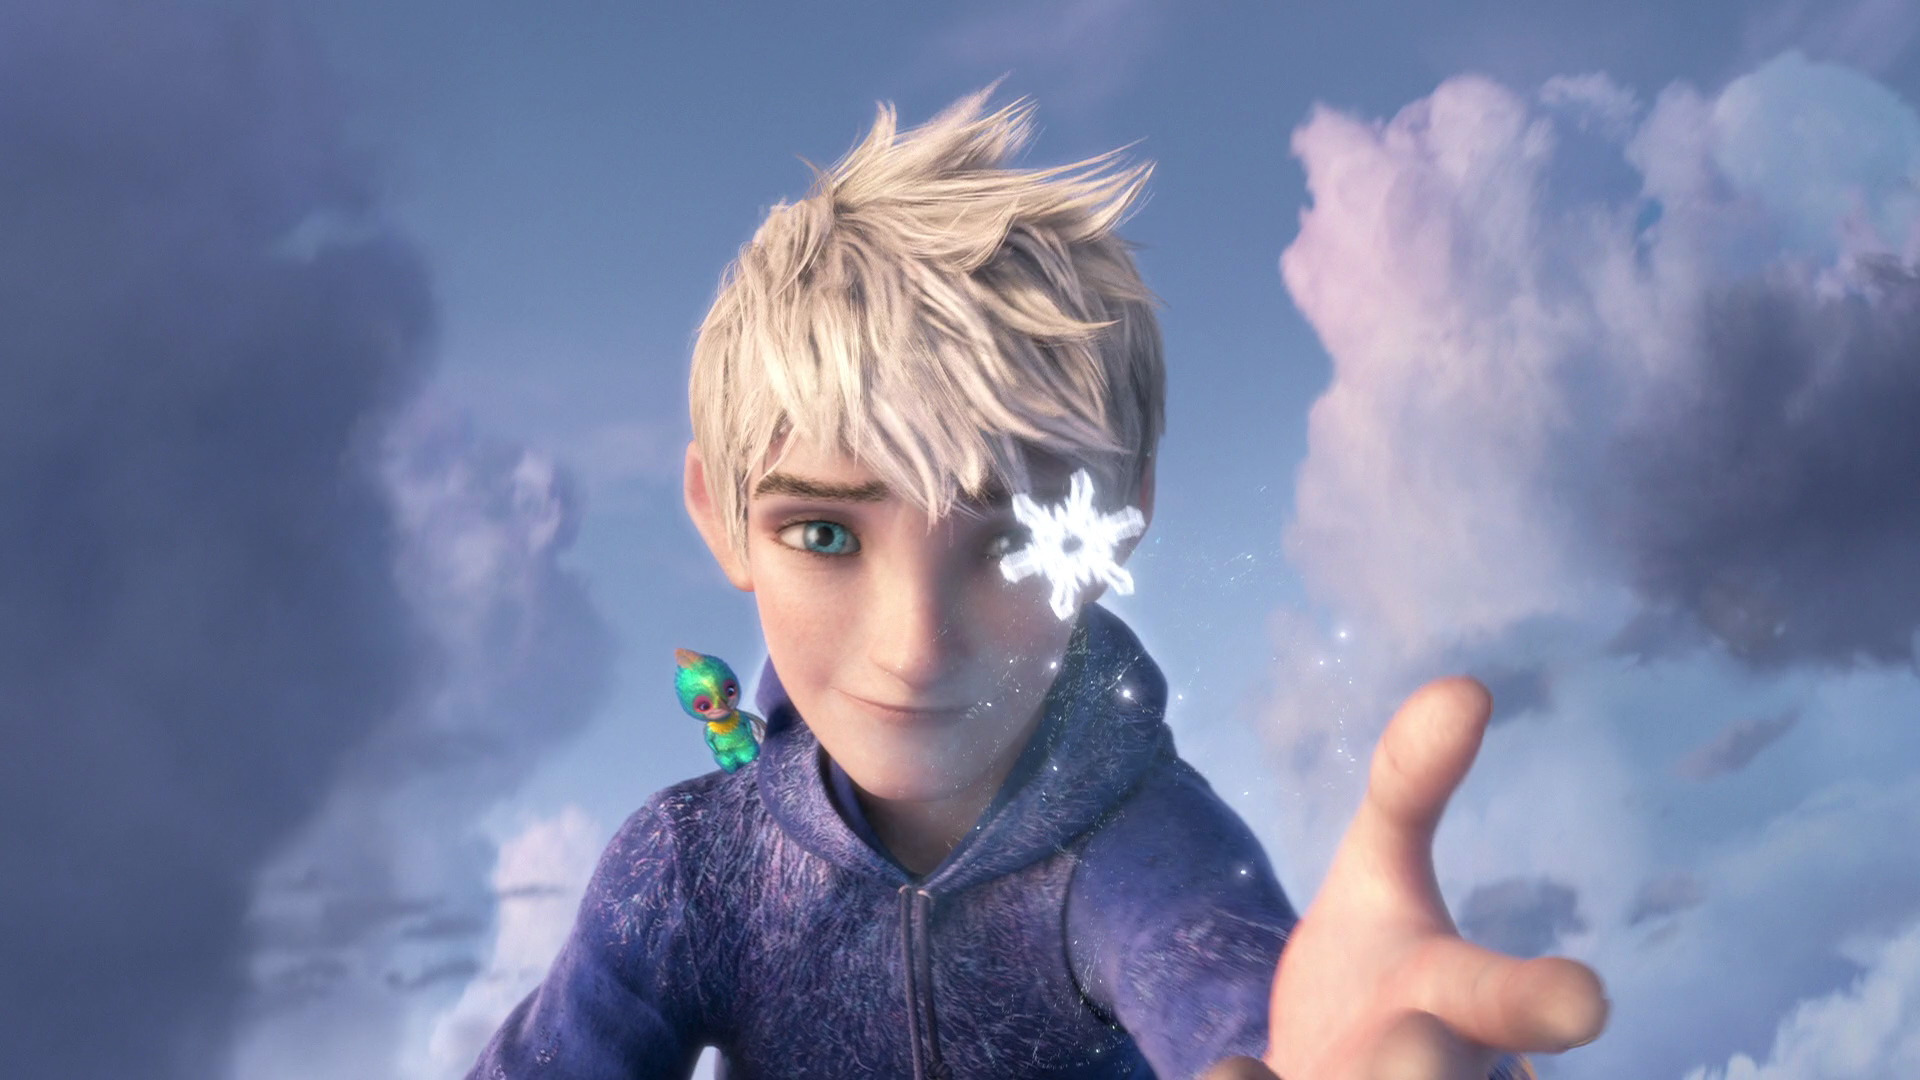 Rise of the guardians afbeeldingen jack frost hq hd achtergrond and rise of the guardians images jack frost hq hd wallpaper and background photos thecheapjerseys Gallery